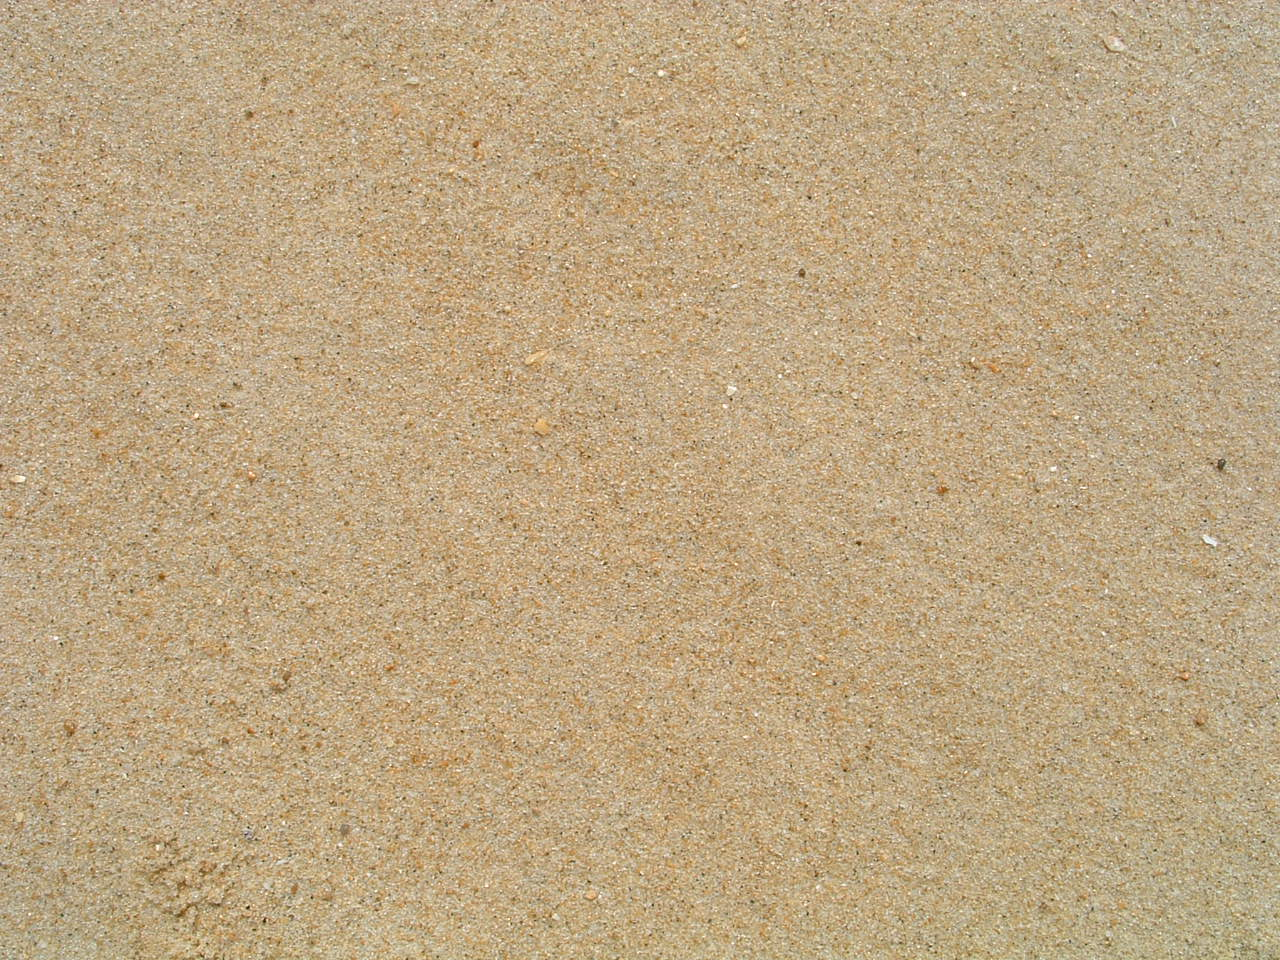 File Sand Jpg Wikimedia Commons